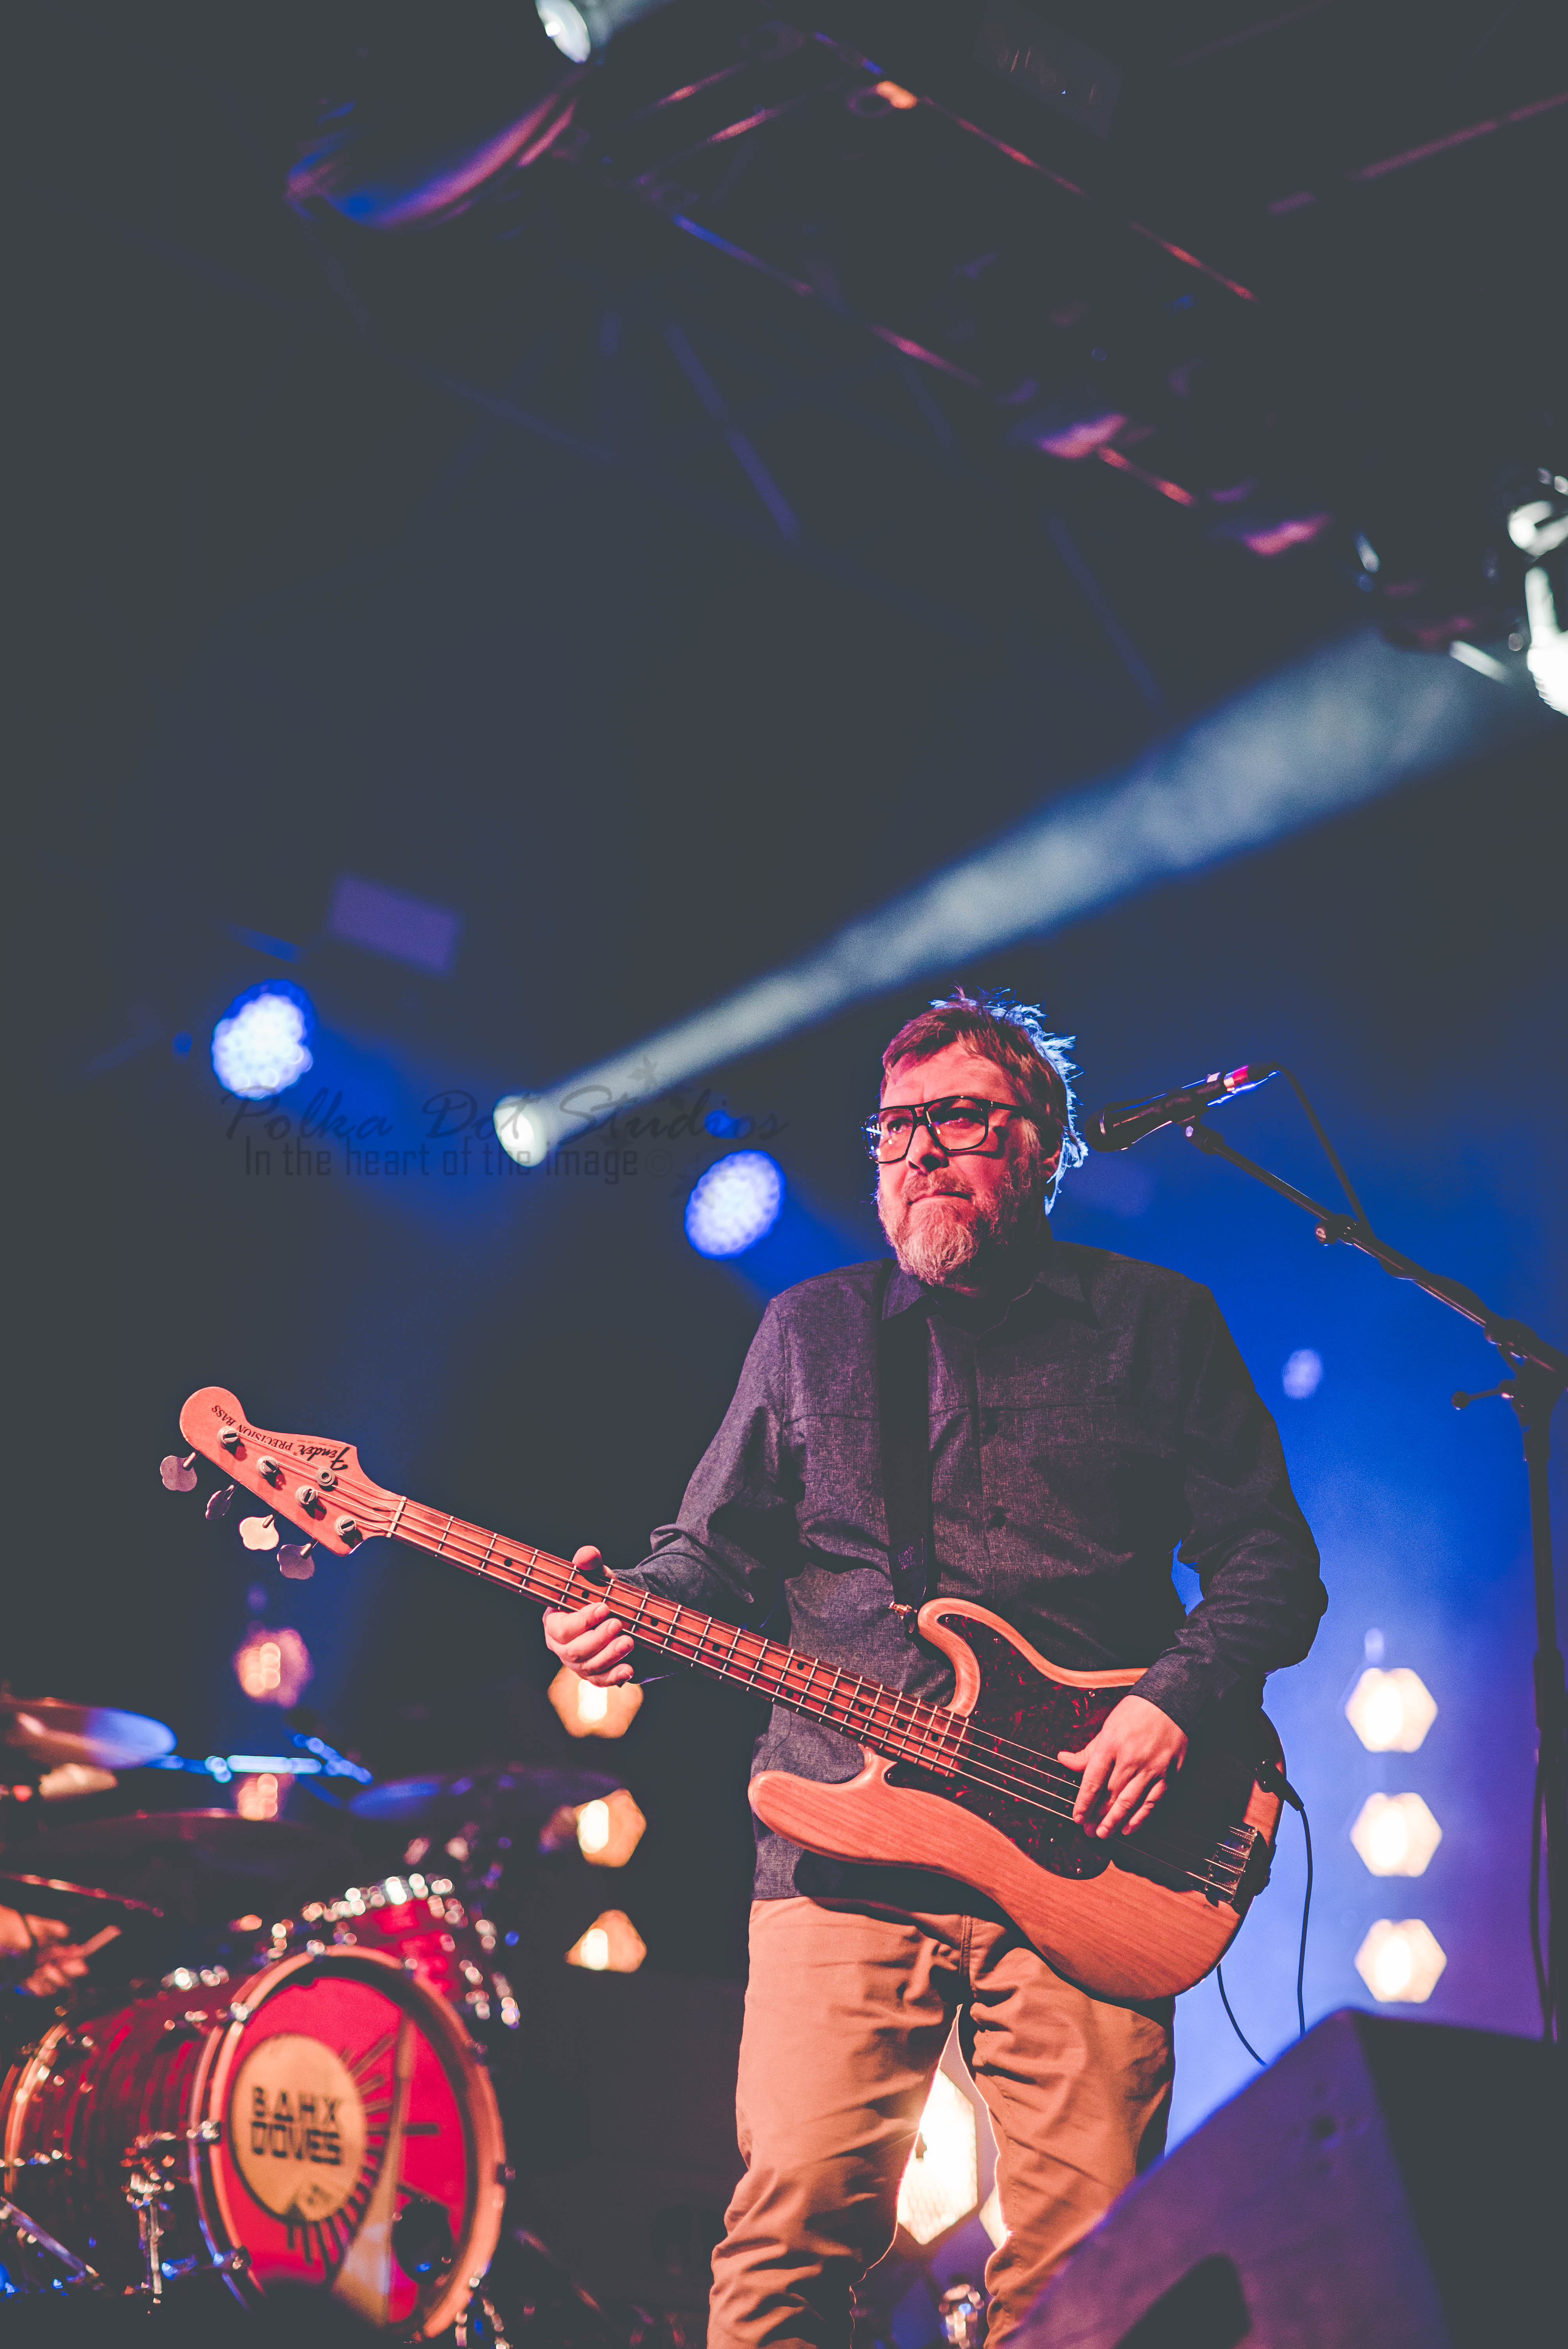 Jez Williams from Doves live at Bingley Weekender 2019